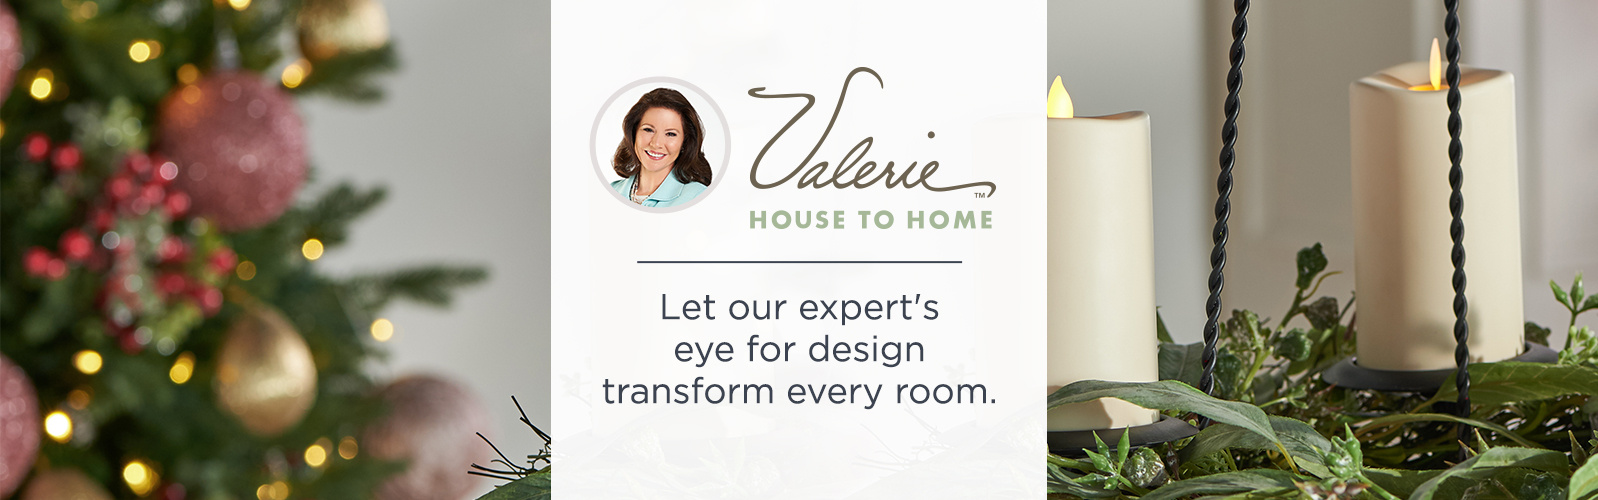 Valerie House to Home - Be inspired! Set the stage for a very merry holiday.